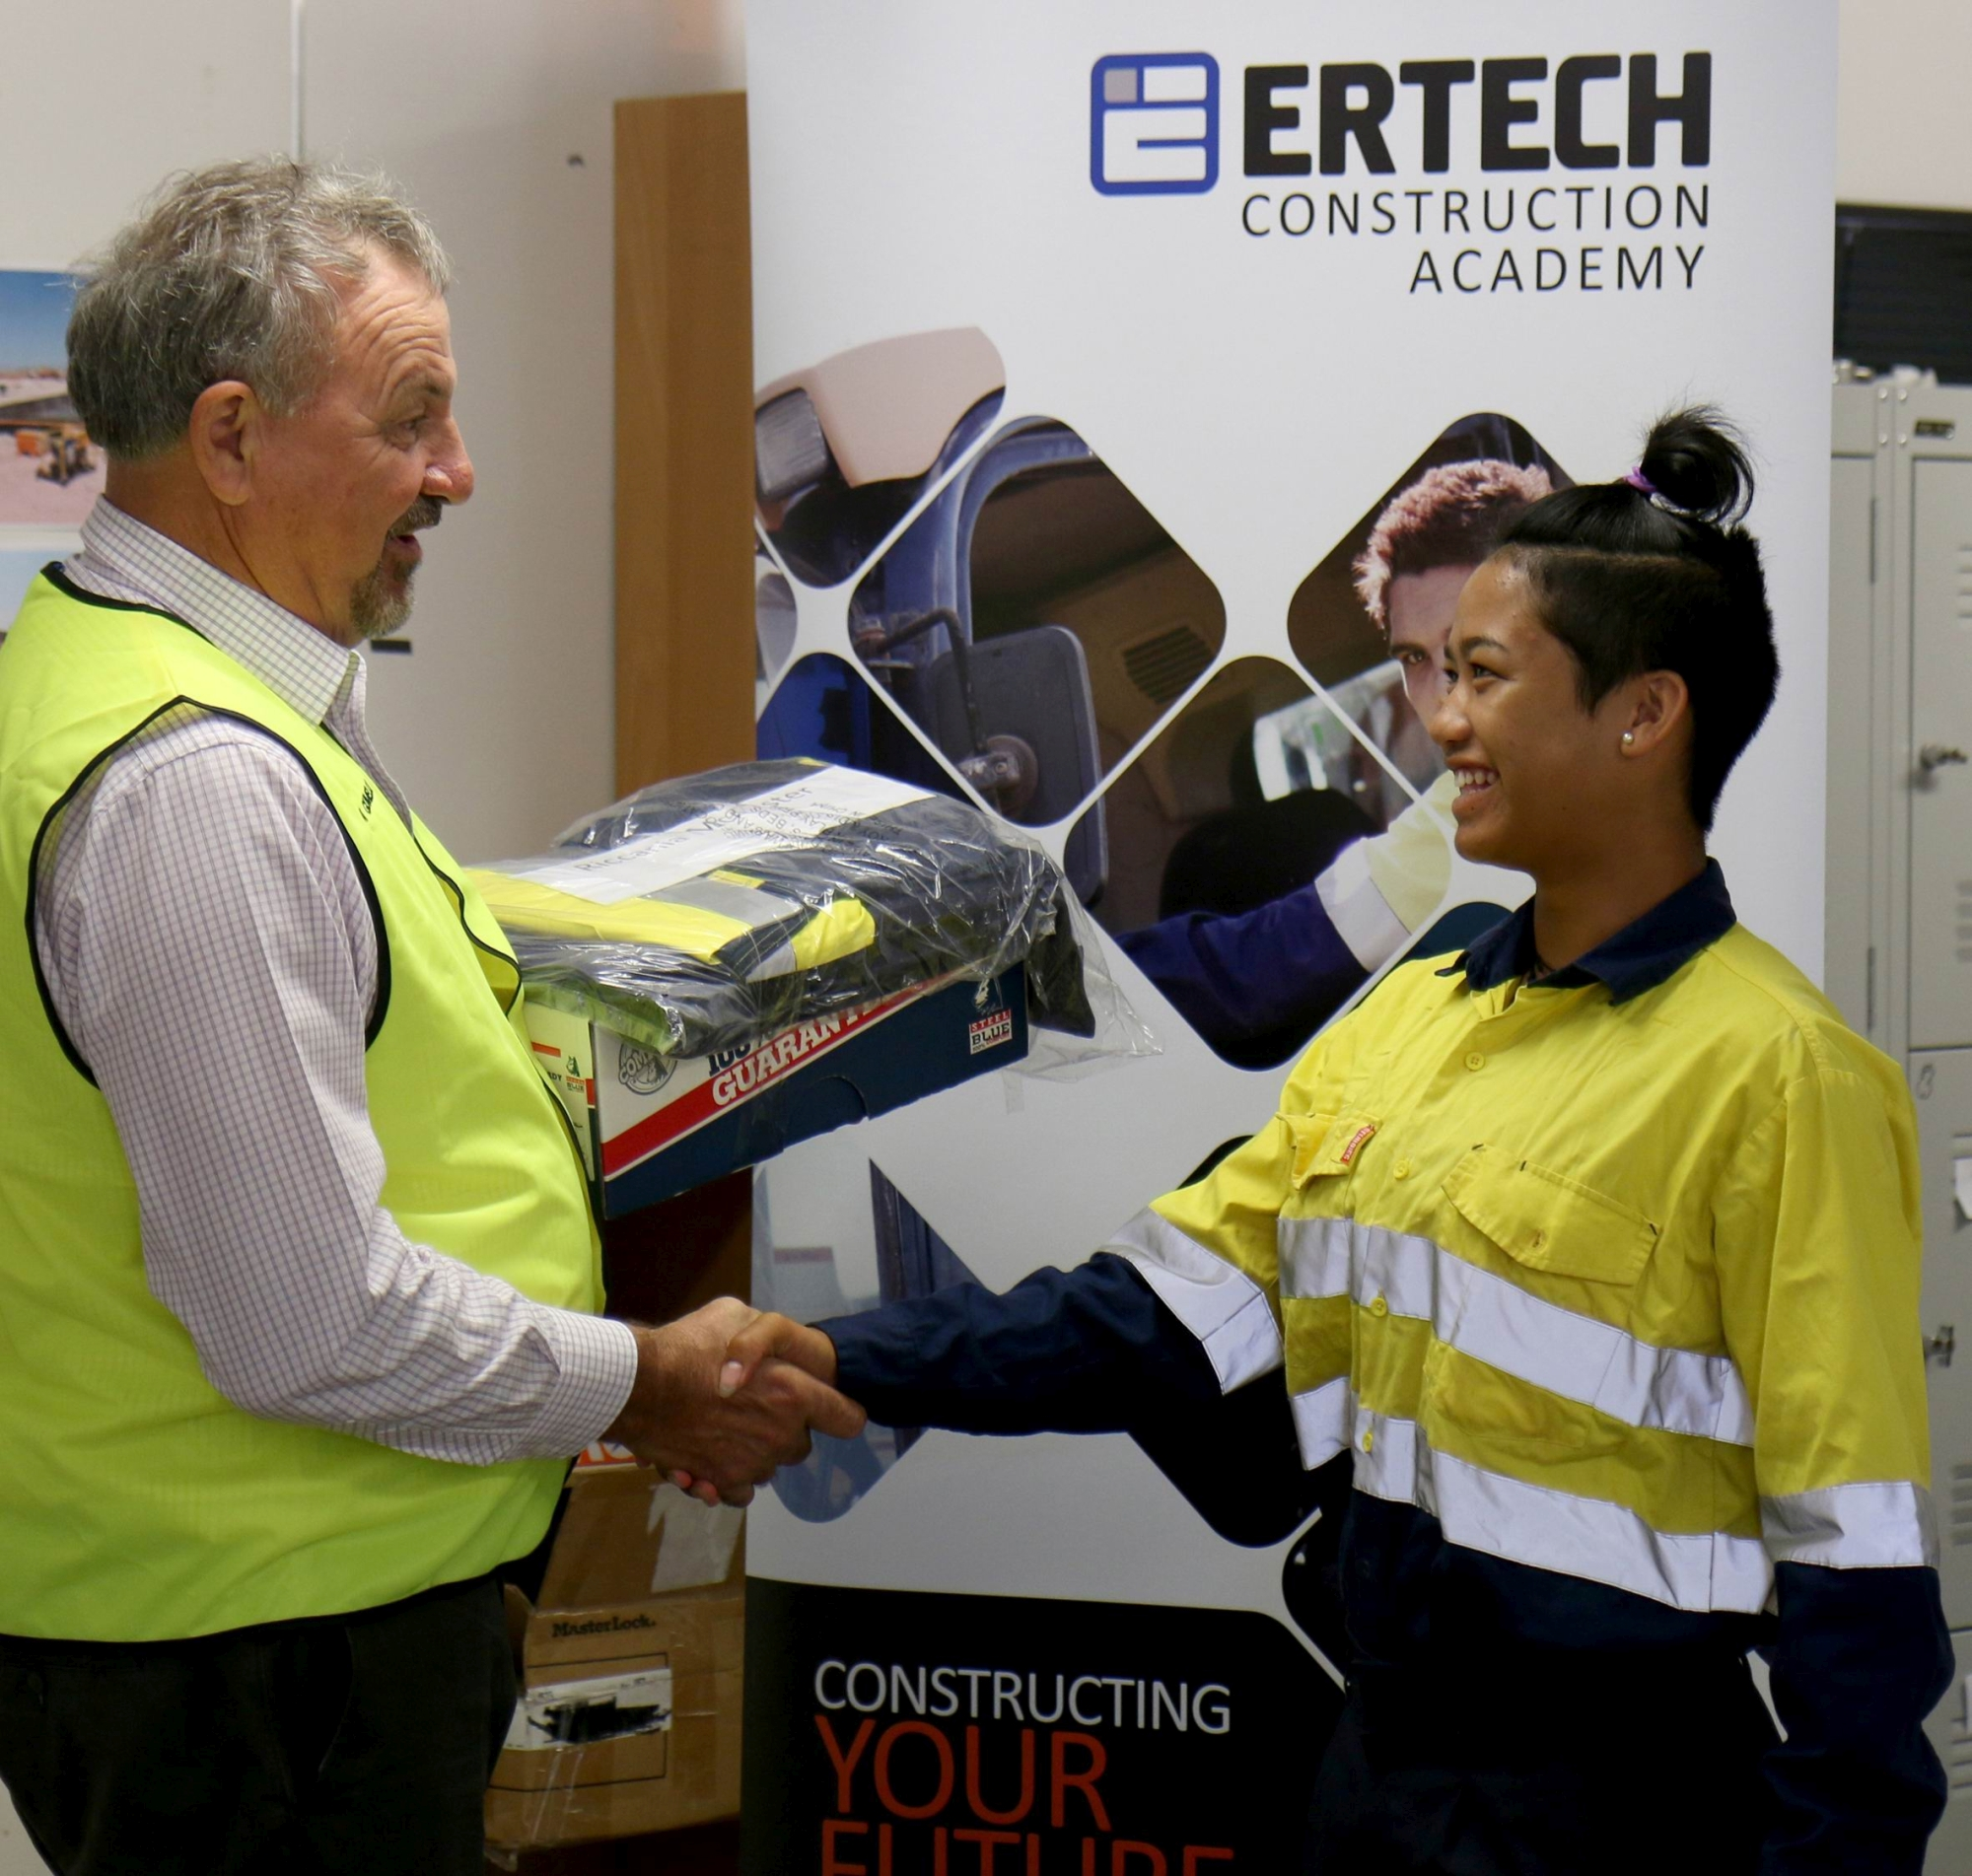 Ricci-Rose McAlister, of Irene McCormack Catholic College, with Ertech's Jim Giumelli.